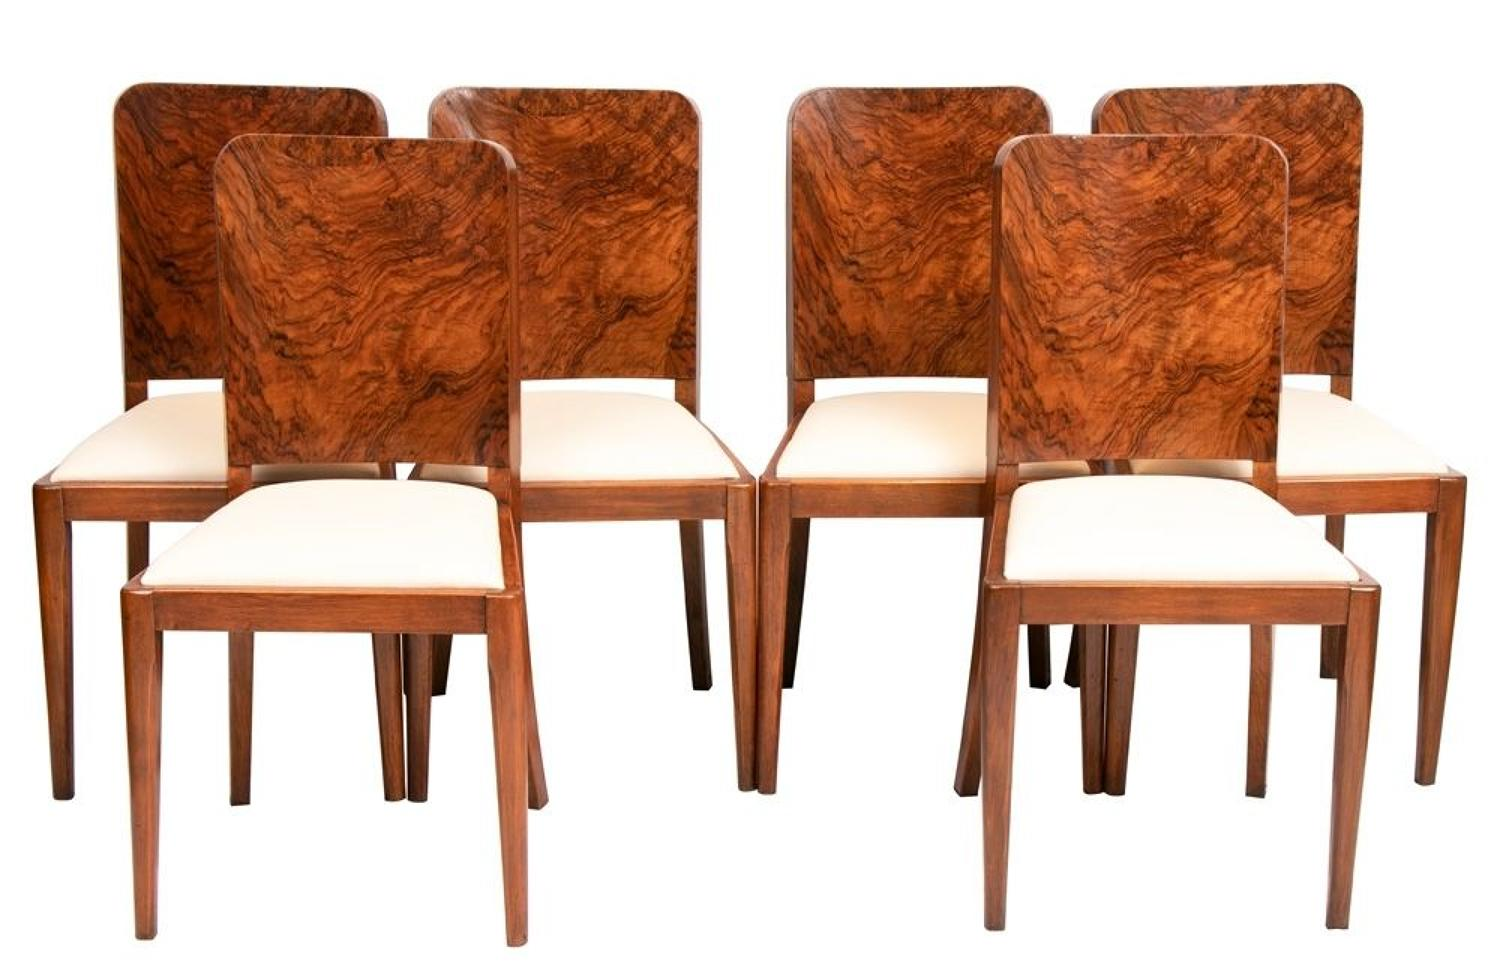 Set of 6 British Art Deco Dining Chairs